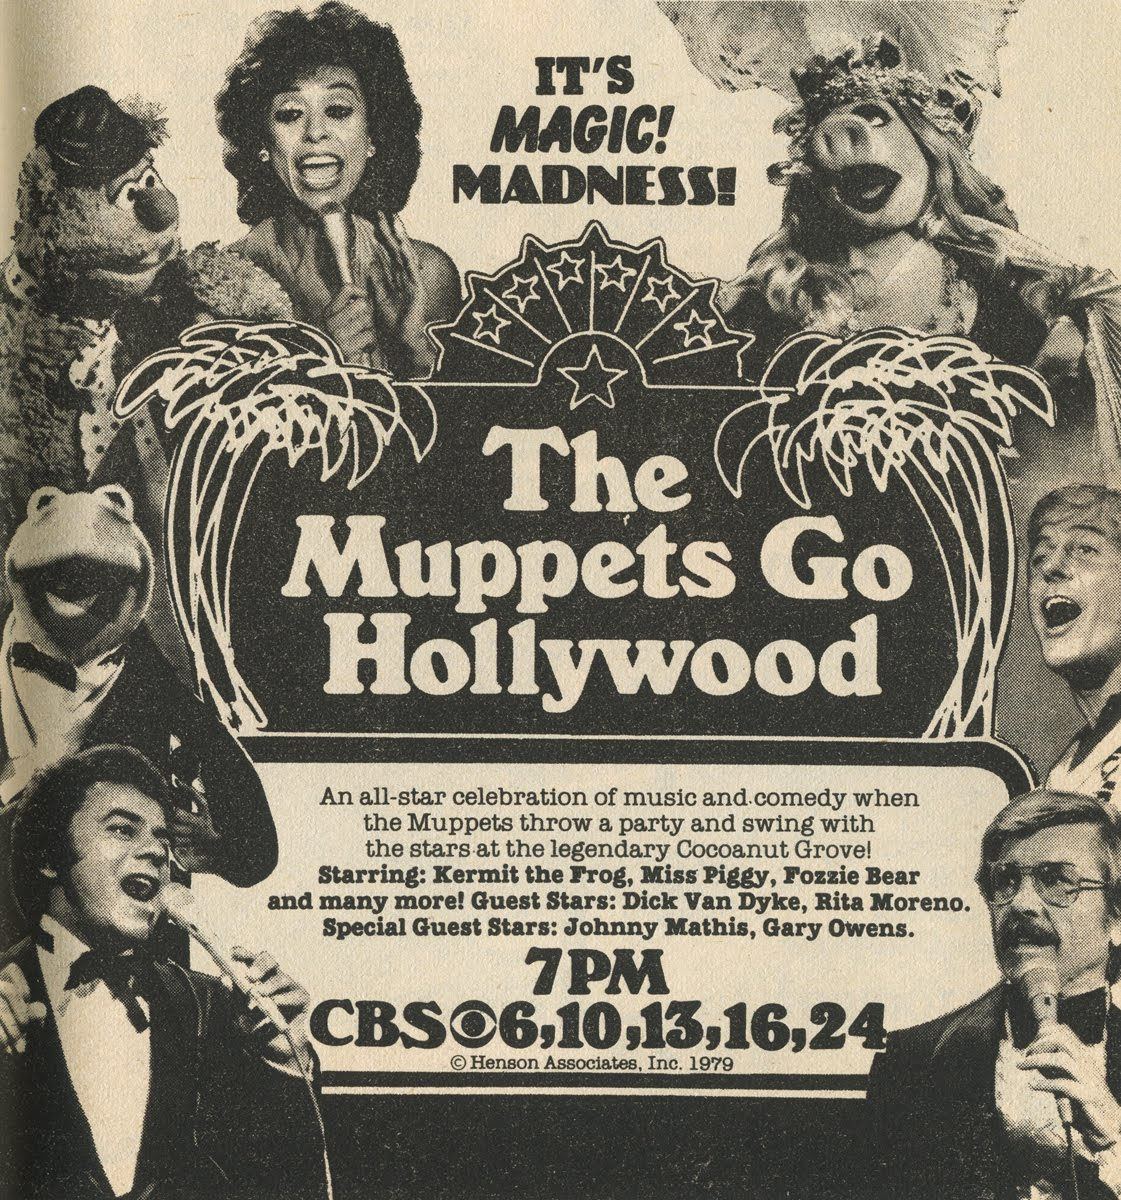 Remarkable, very muppet dick owes me money consider, that